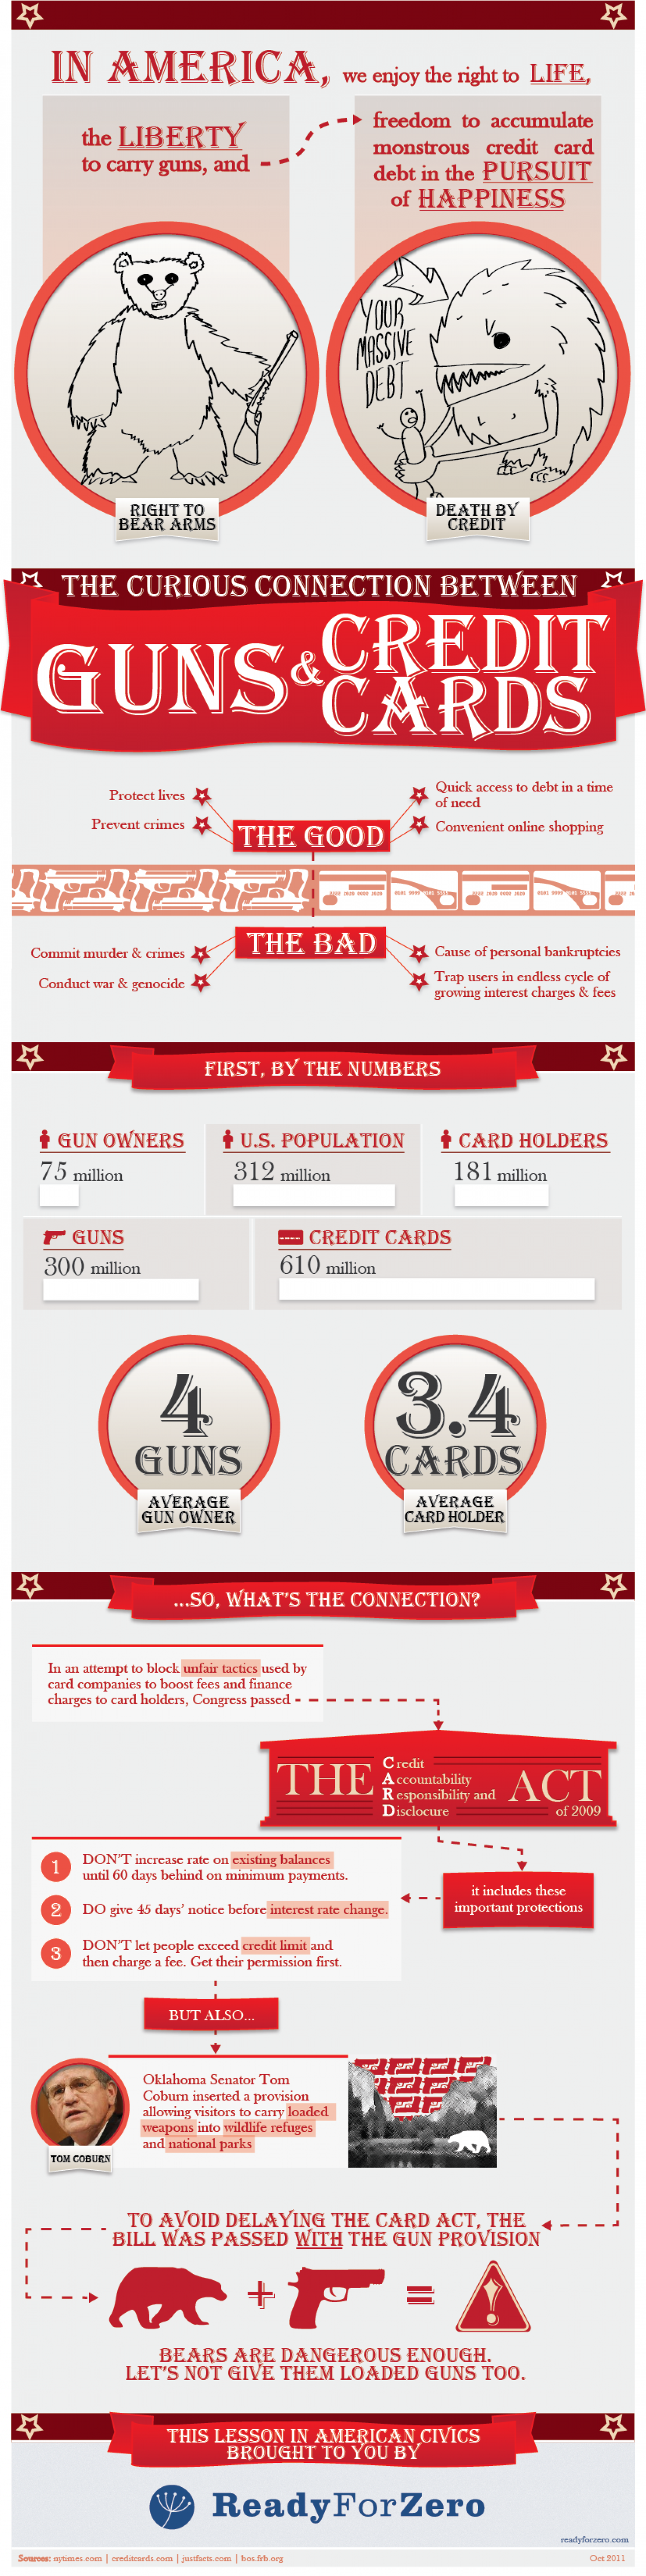 The Curious Connection Between Guns and Credit Cards Infographic